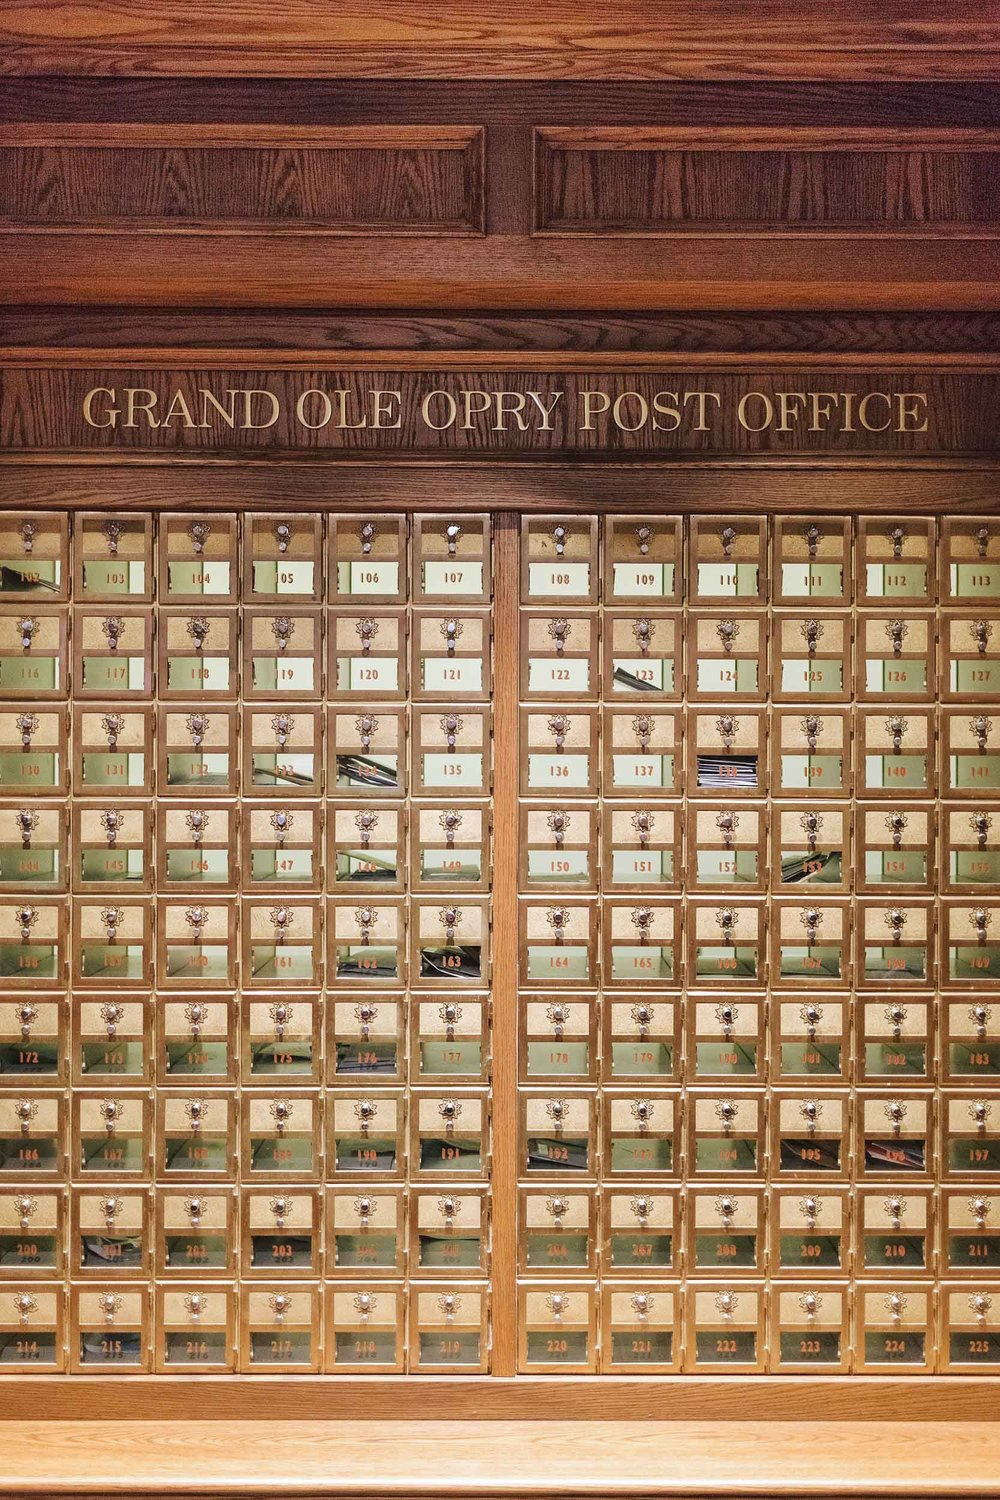 The Grand Ole Opry Post Office backstage